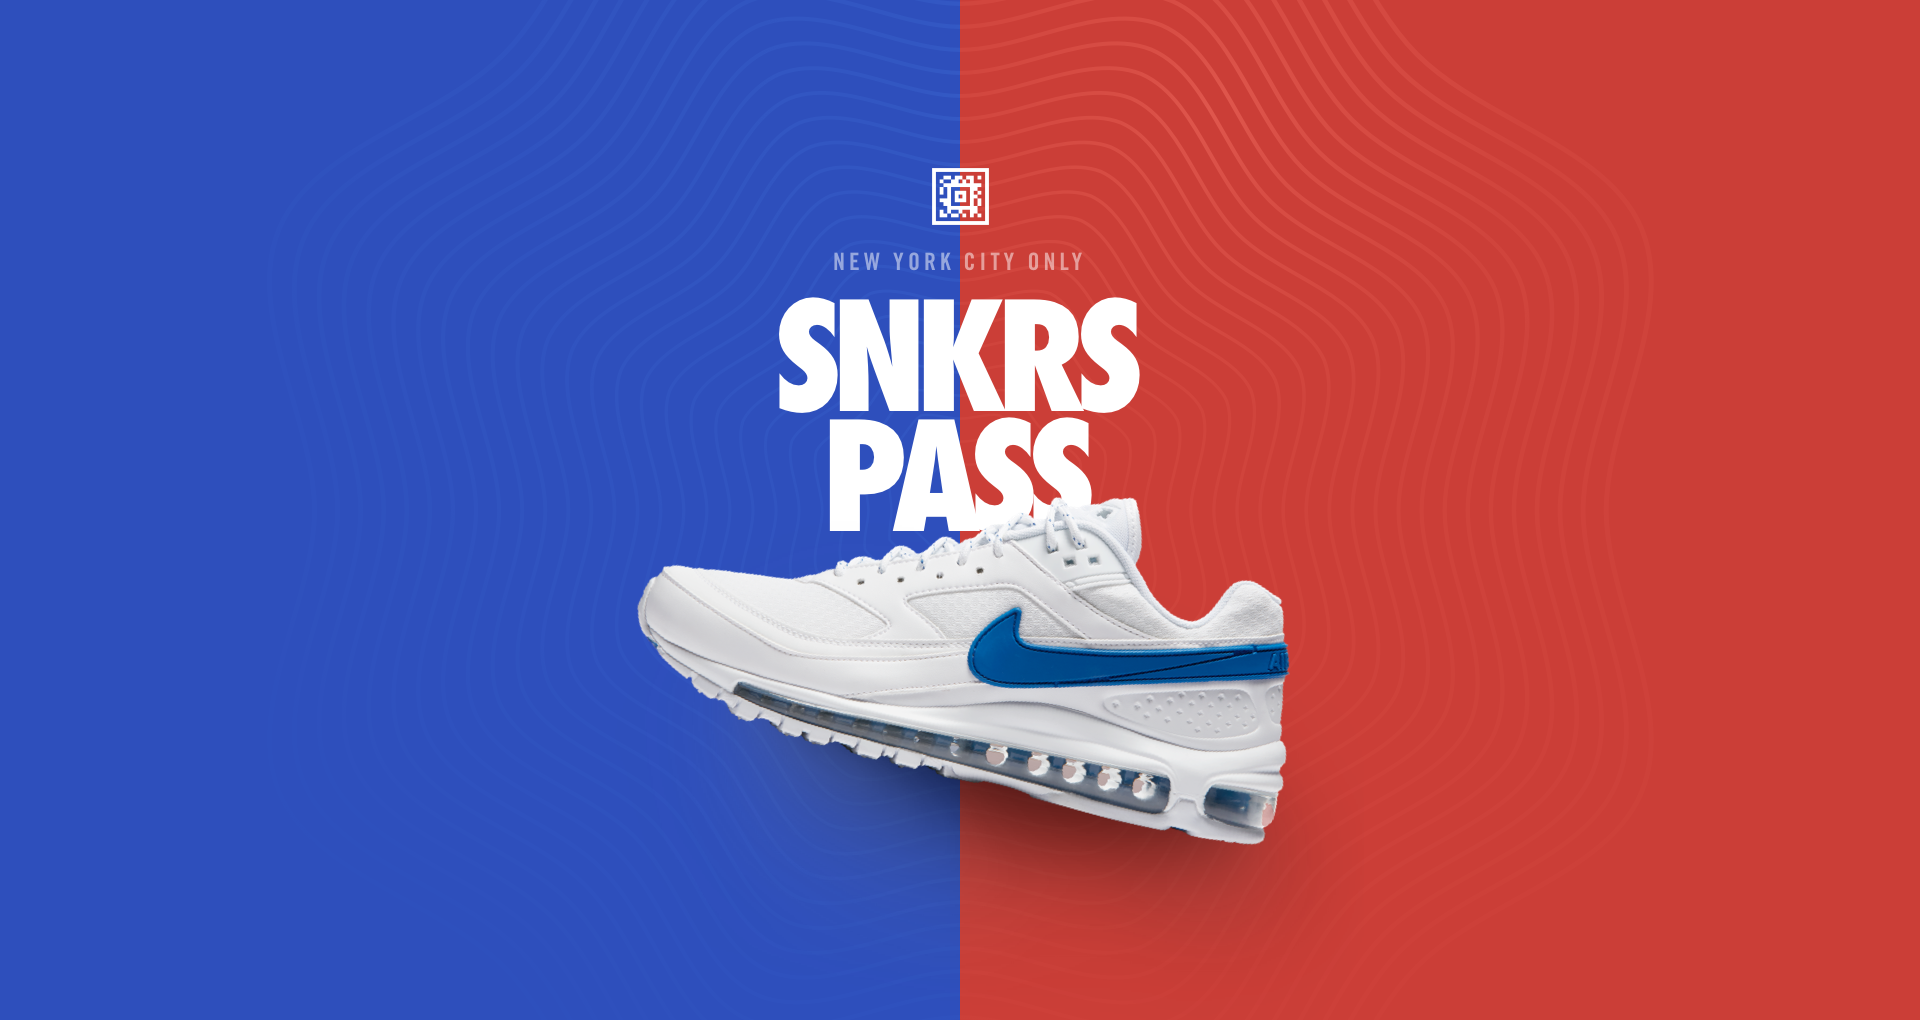 450111b1d4 Skepta's Air Max Collab Is Available on SNKRS Pass   banner   Air ...